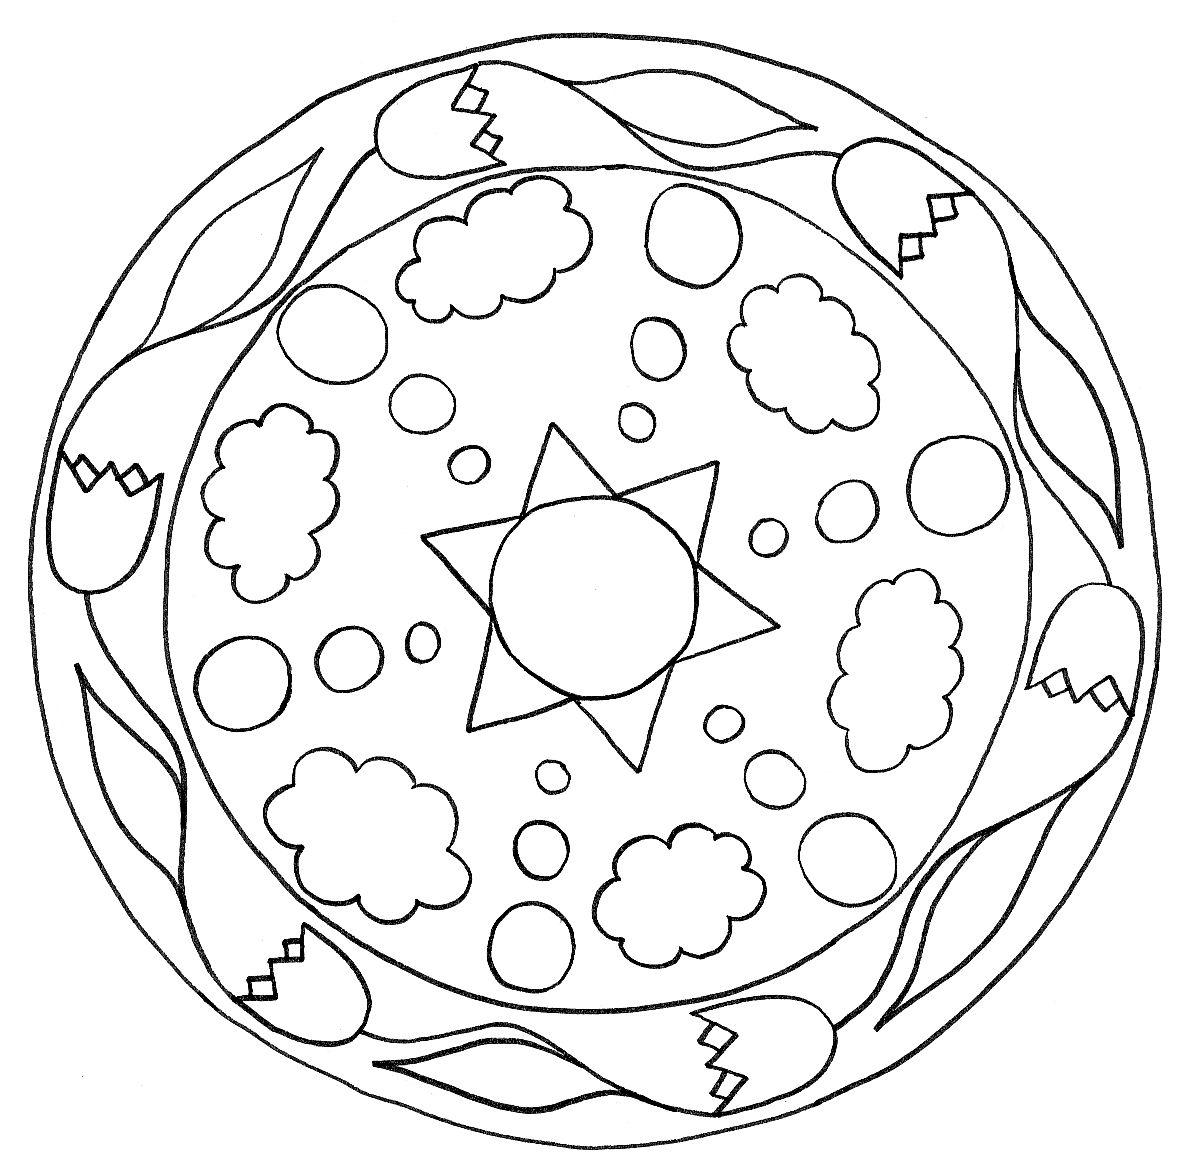 simple mandalas for kids coloring - Simple Mandala Coloring Pages Kid